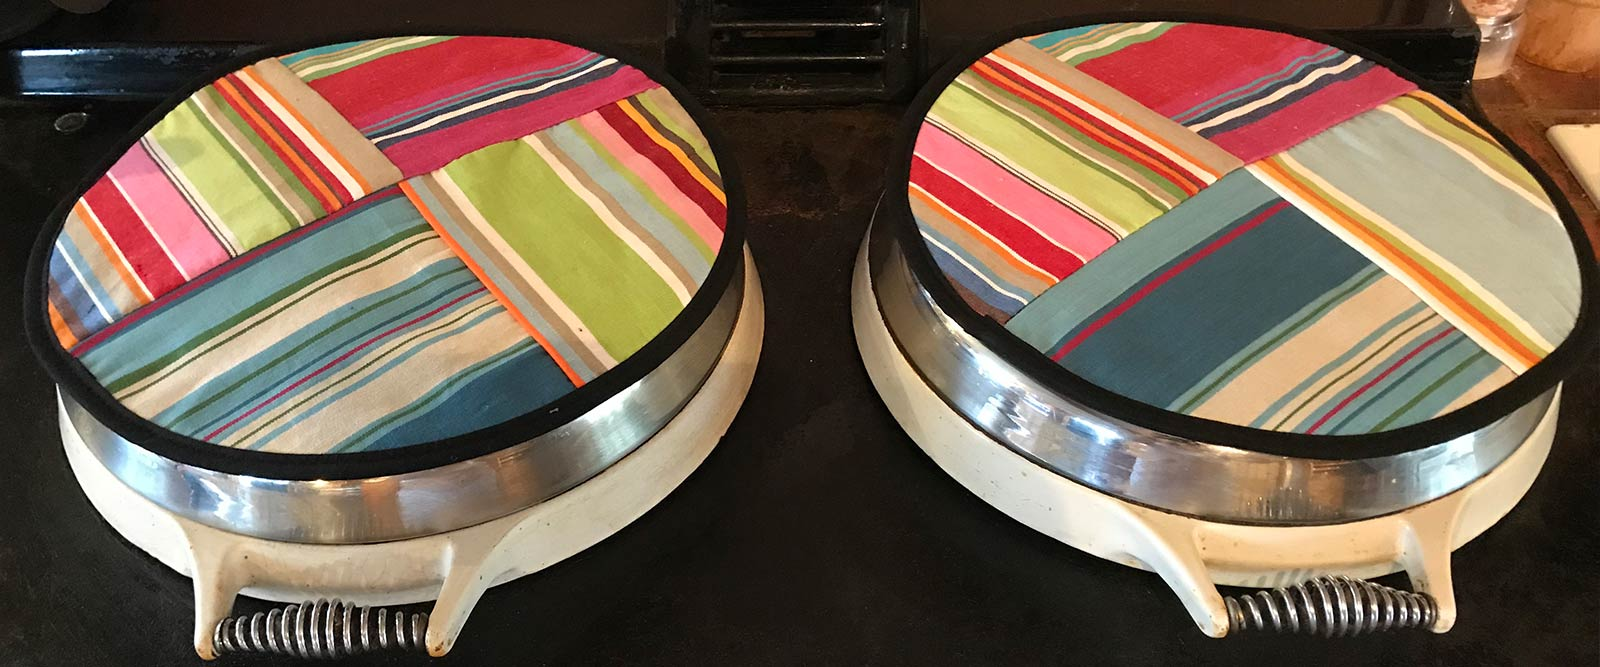 Striped Hob Covers for Agas | Range Cooker Hob Covers | Round Hob Protectors | Chefs Pads